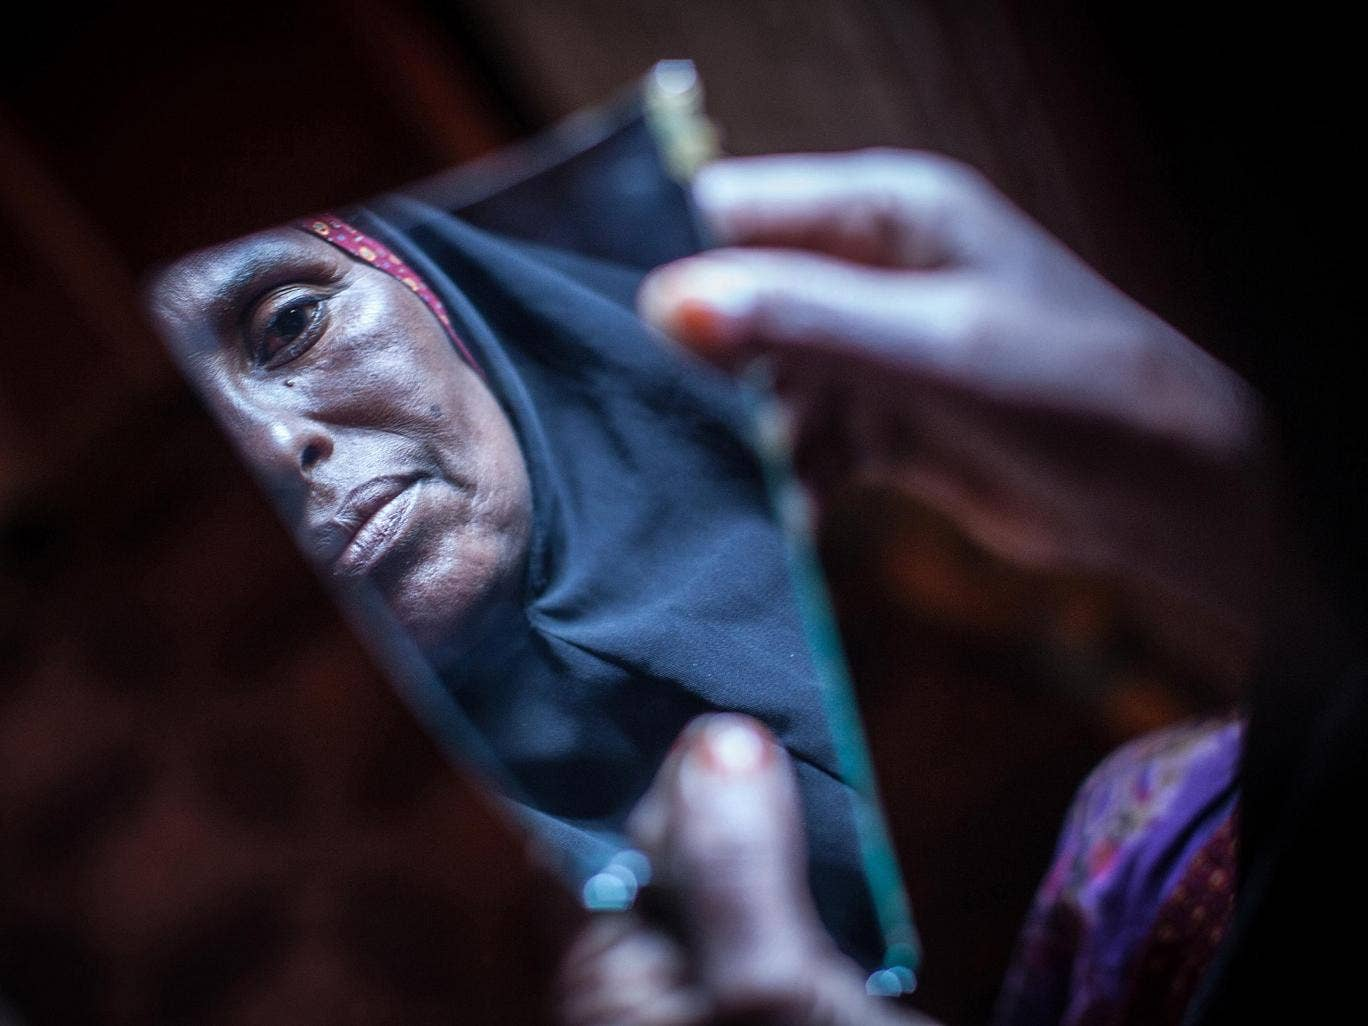 Finnish photographer witnessed two girls being circumcised in Kenya